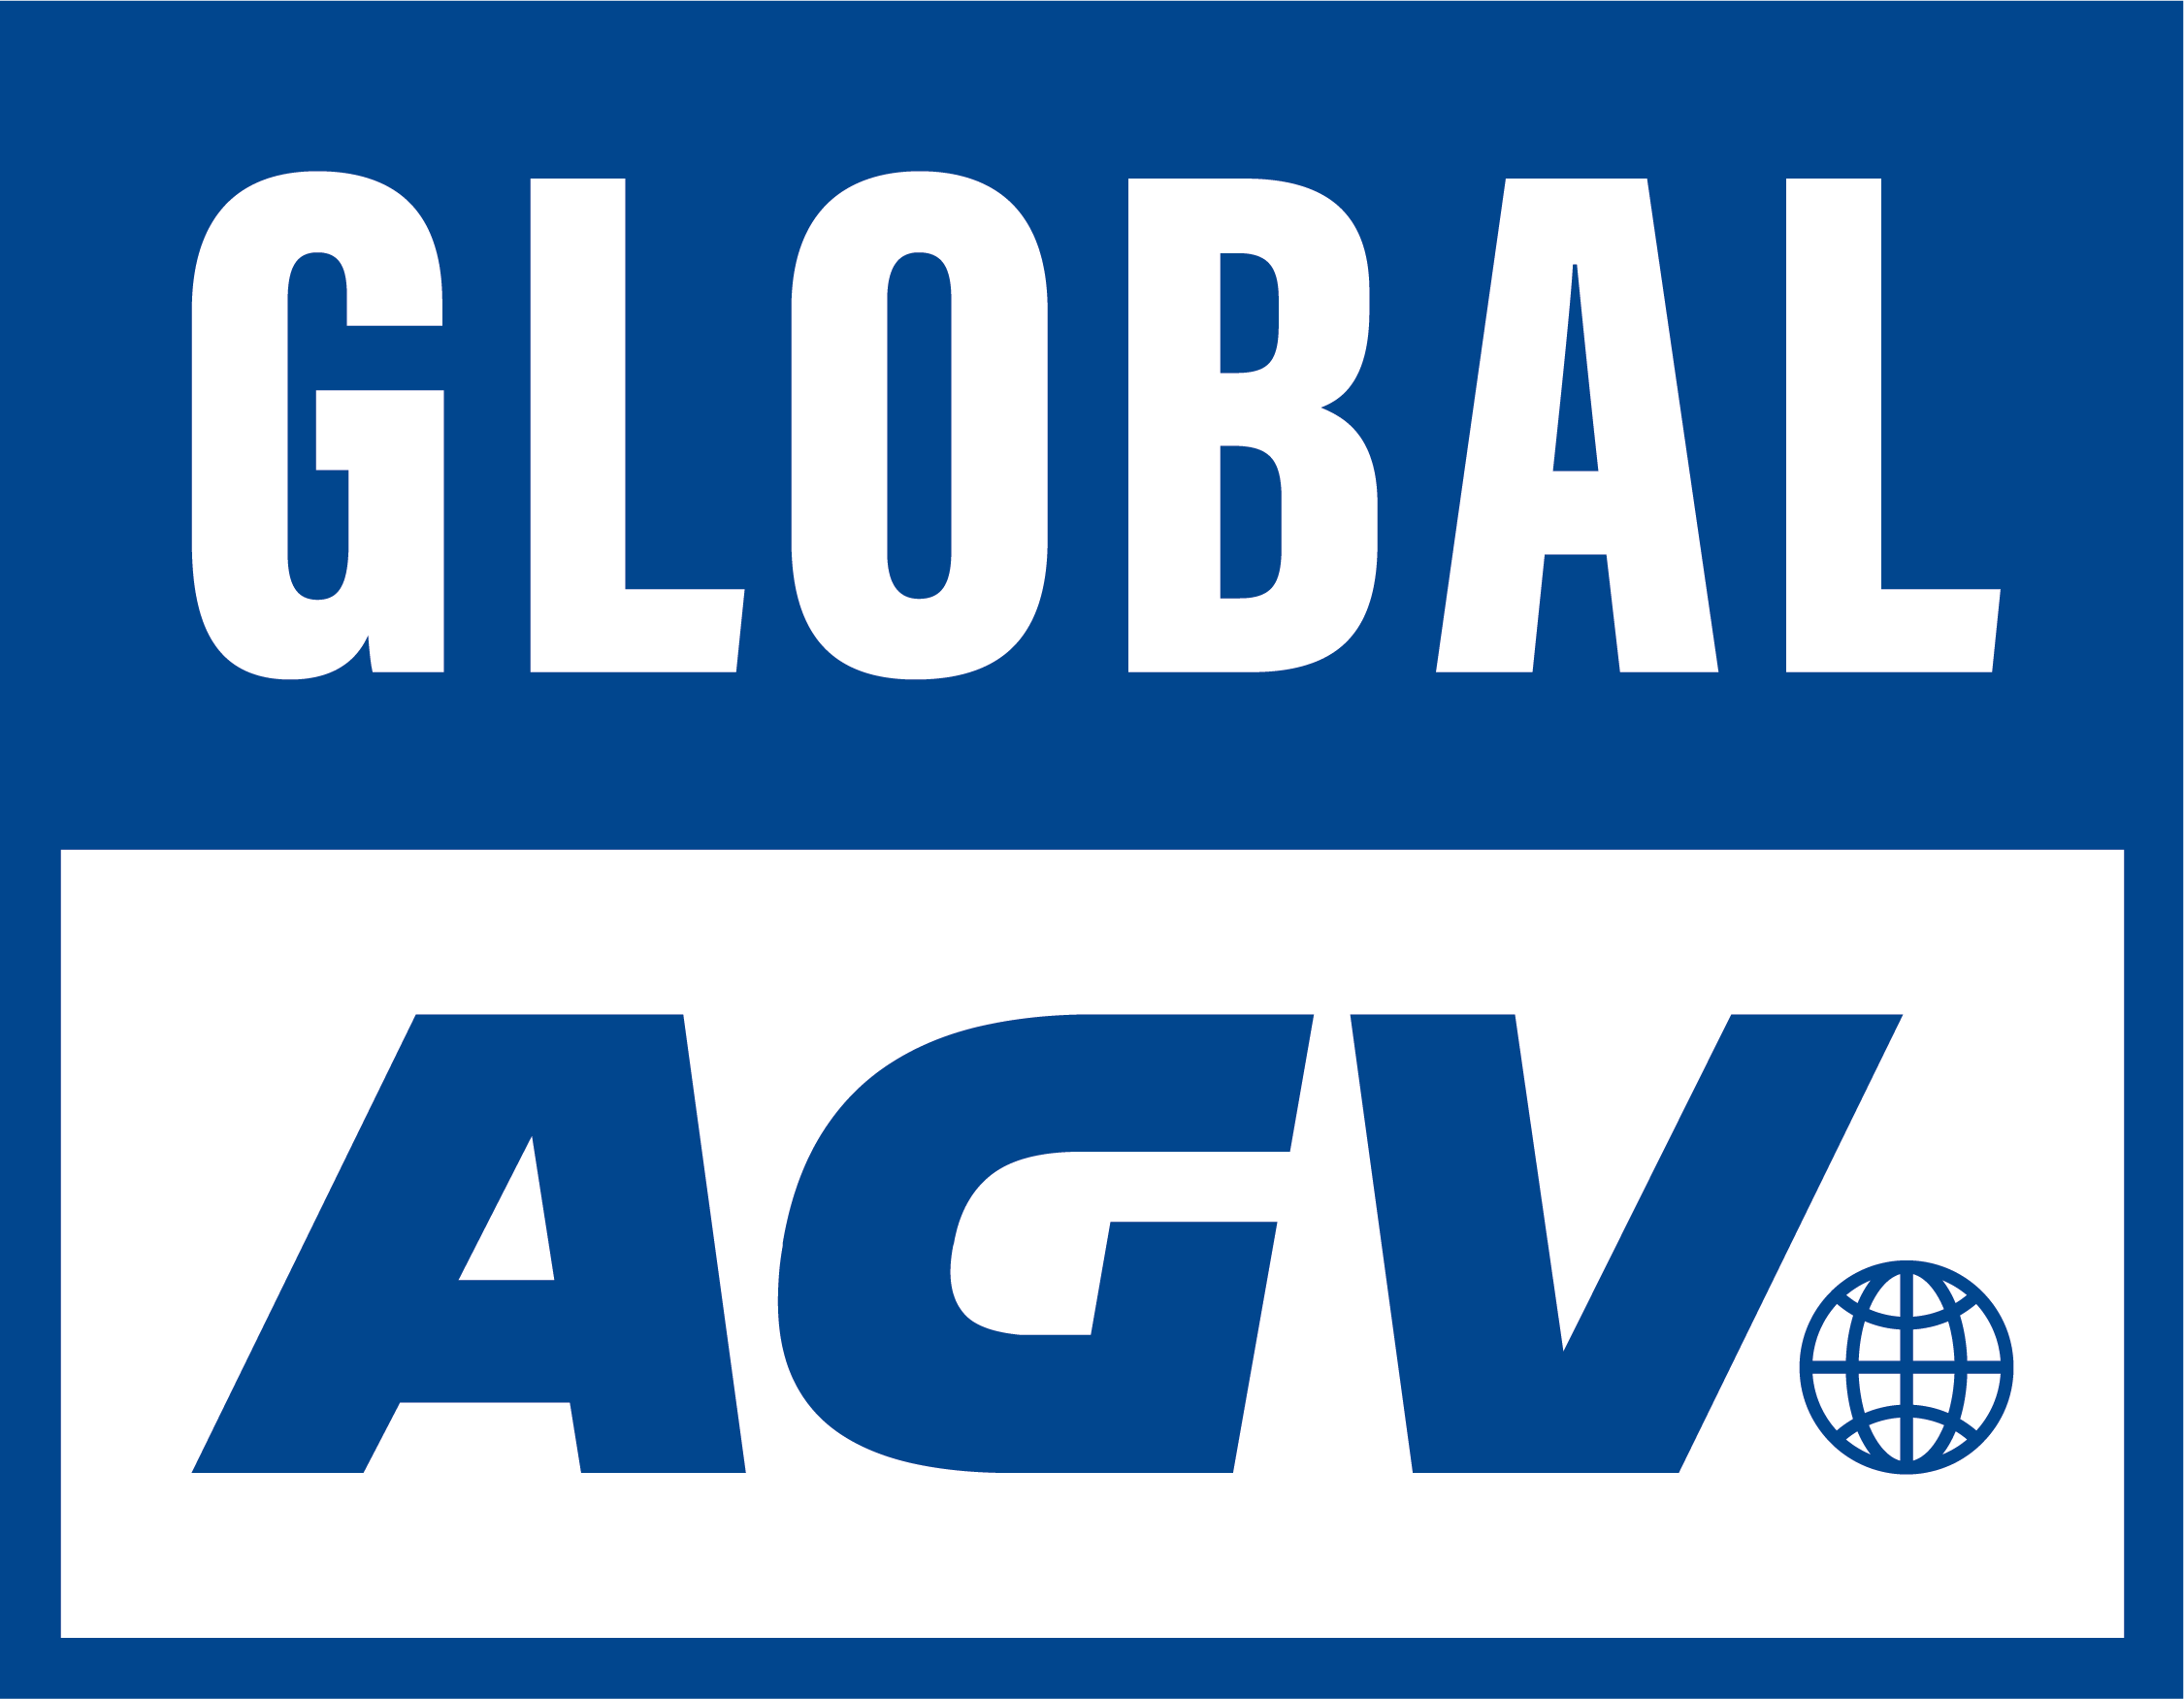 Nic Temple of Global AGV spoke with manufacturing journalist, TR Cutler who shared that Global AGV is happy to work with small manufacturers who have never ventured in the mobile space and simply want